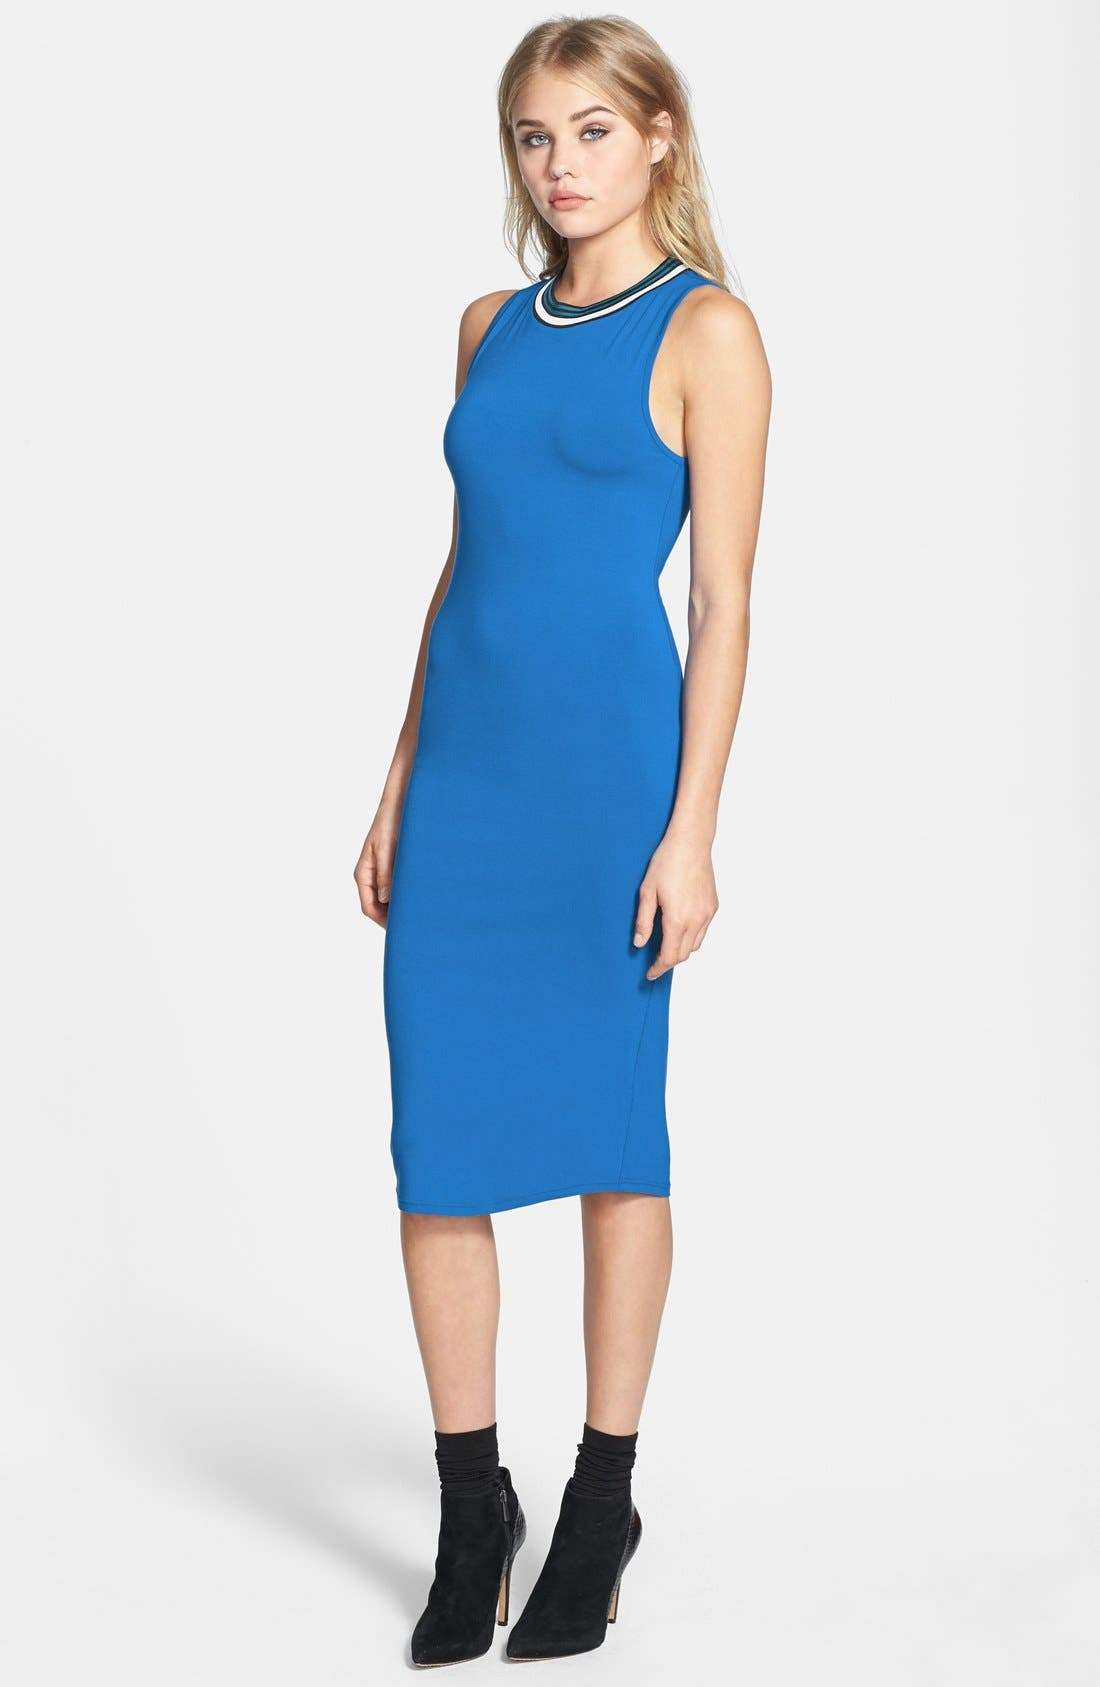 Alternate Image 1 Selected - Topshop Contrast Trim Jersey Midi Dress (Nordstrom Exclusive)